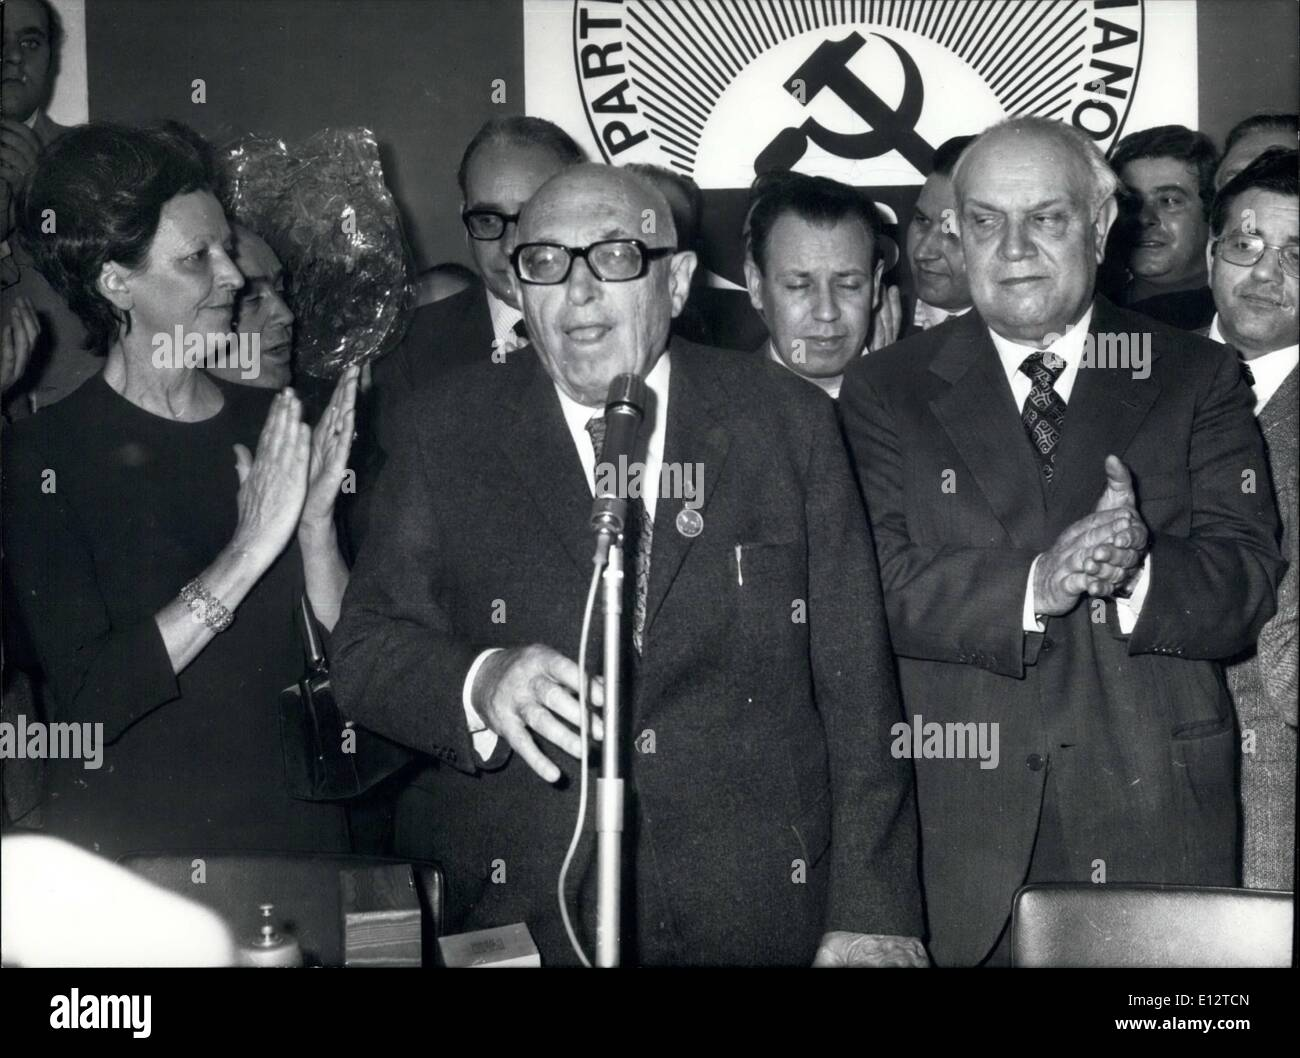 Feb. 24, 2012 - Pietro Nenni, the old leader of the Italian Socialism, has eighty years and the Direction of the PSI (Italian Socialist Party) celebrated him. Photo shows Pietro Nenni, center) feasted by Vice Prime Minister Francesco De Hartino (right) and by Luciana Nenni, daughter of the leader. - Stock Image